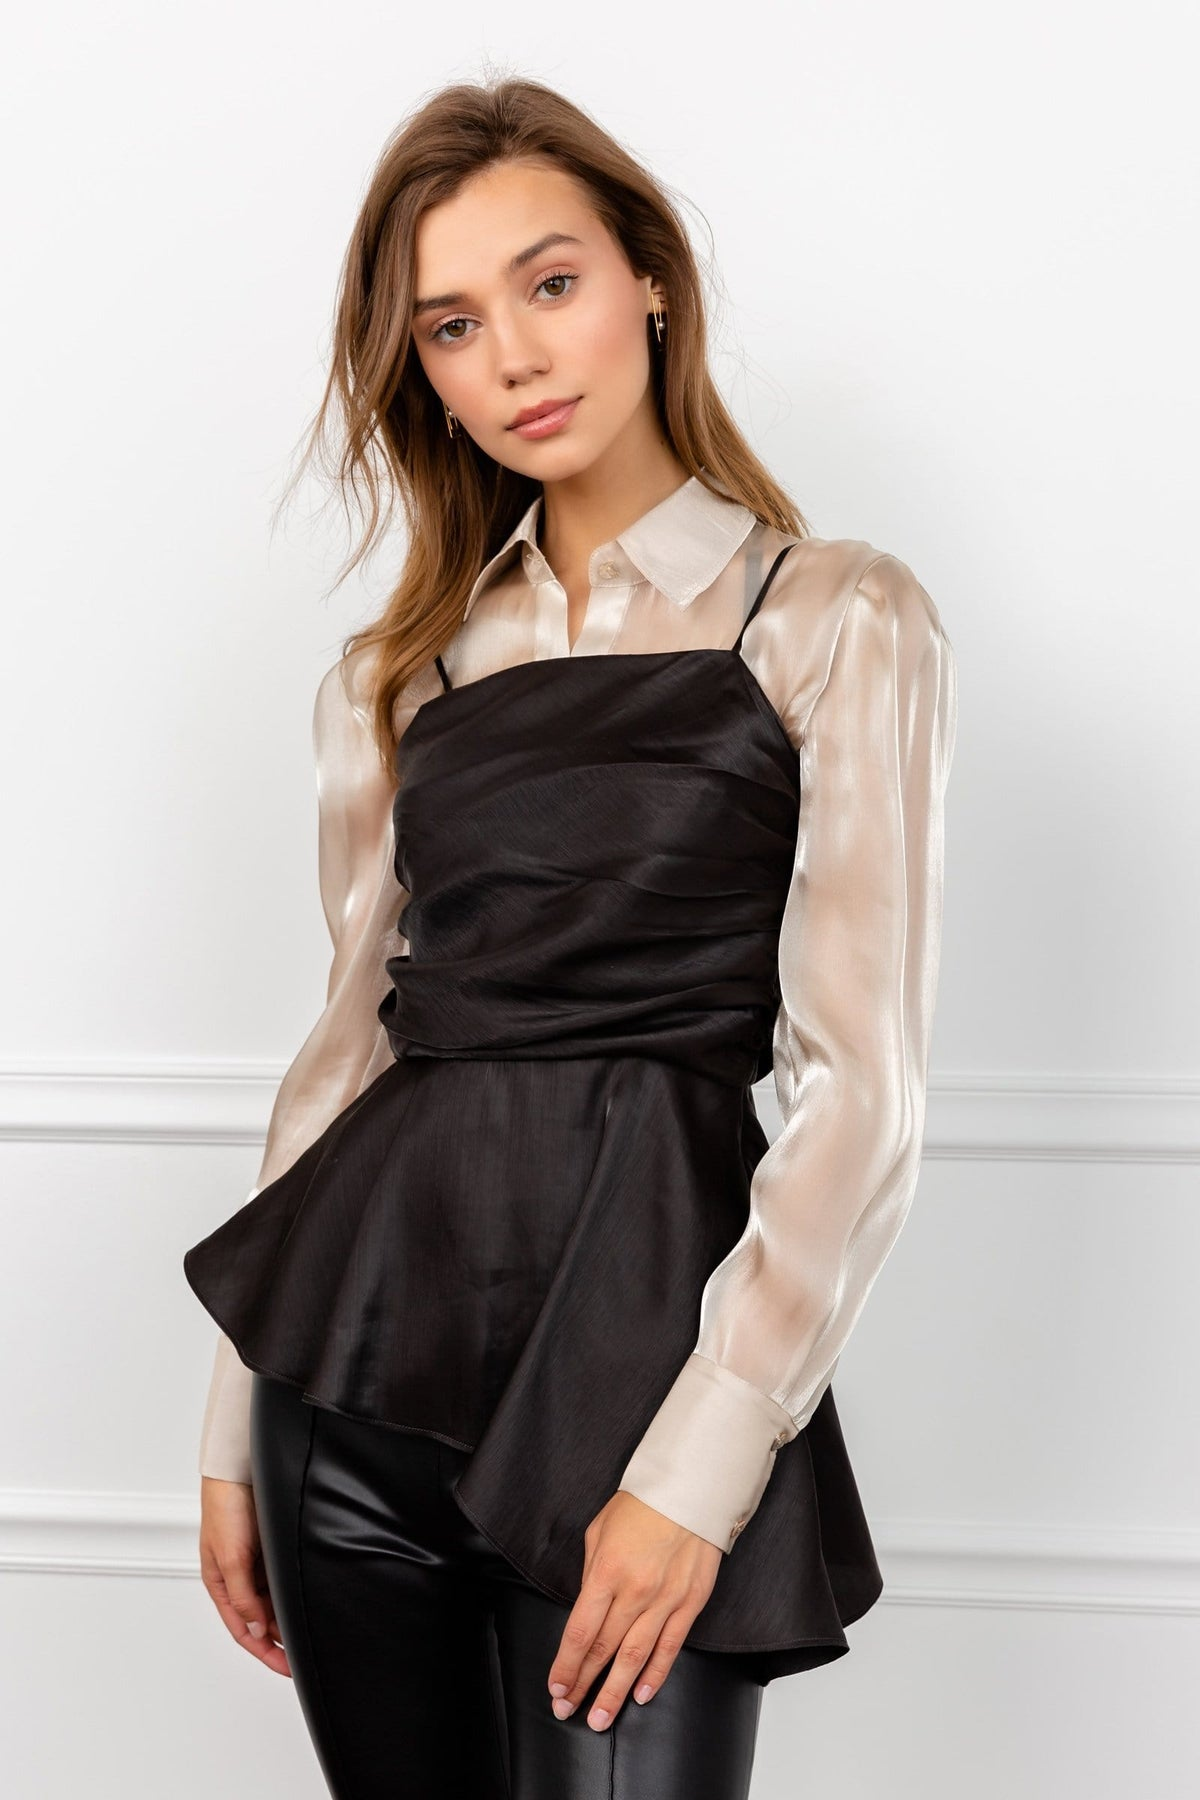 Satin Black Bodice Flowy Tunic by J.ING Women's Clothing